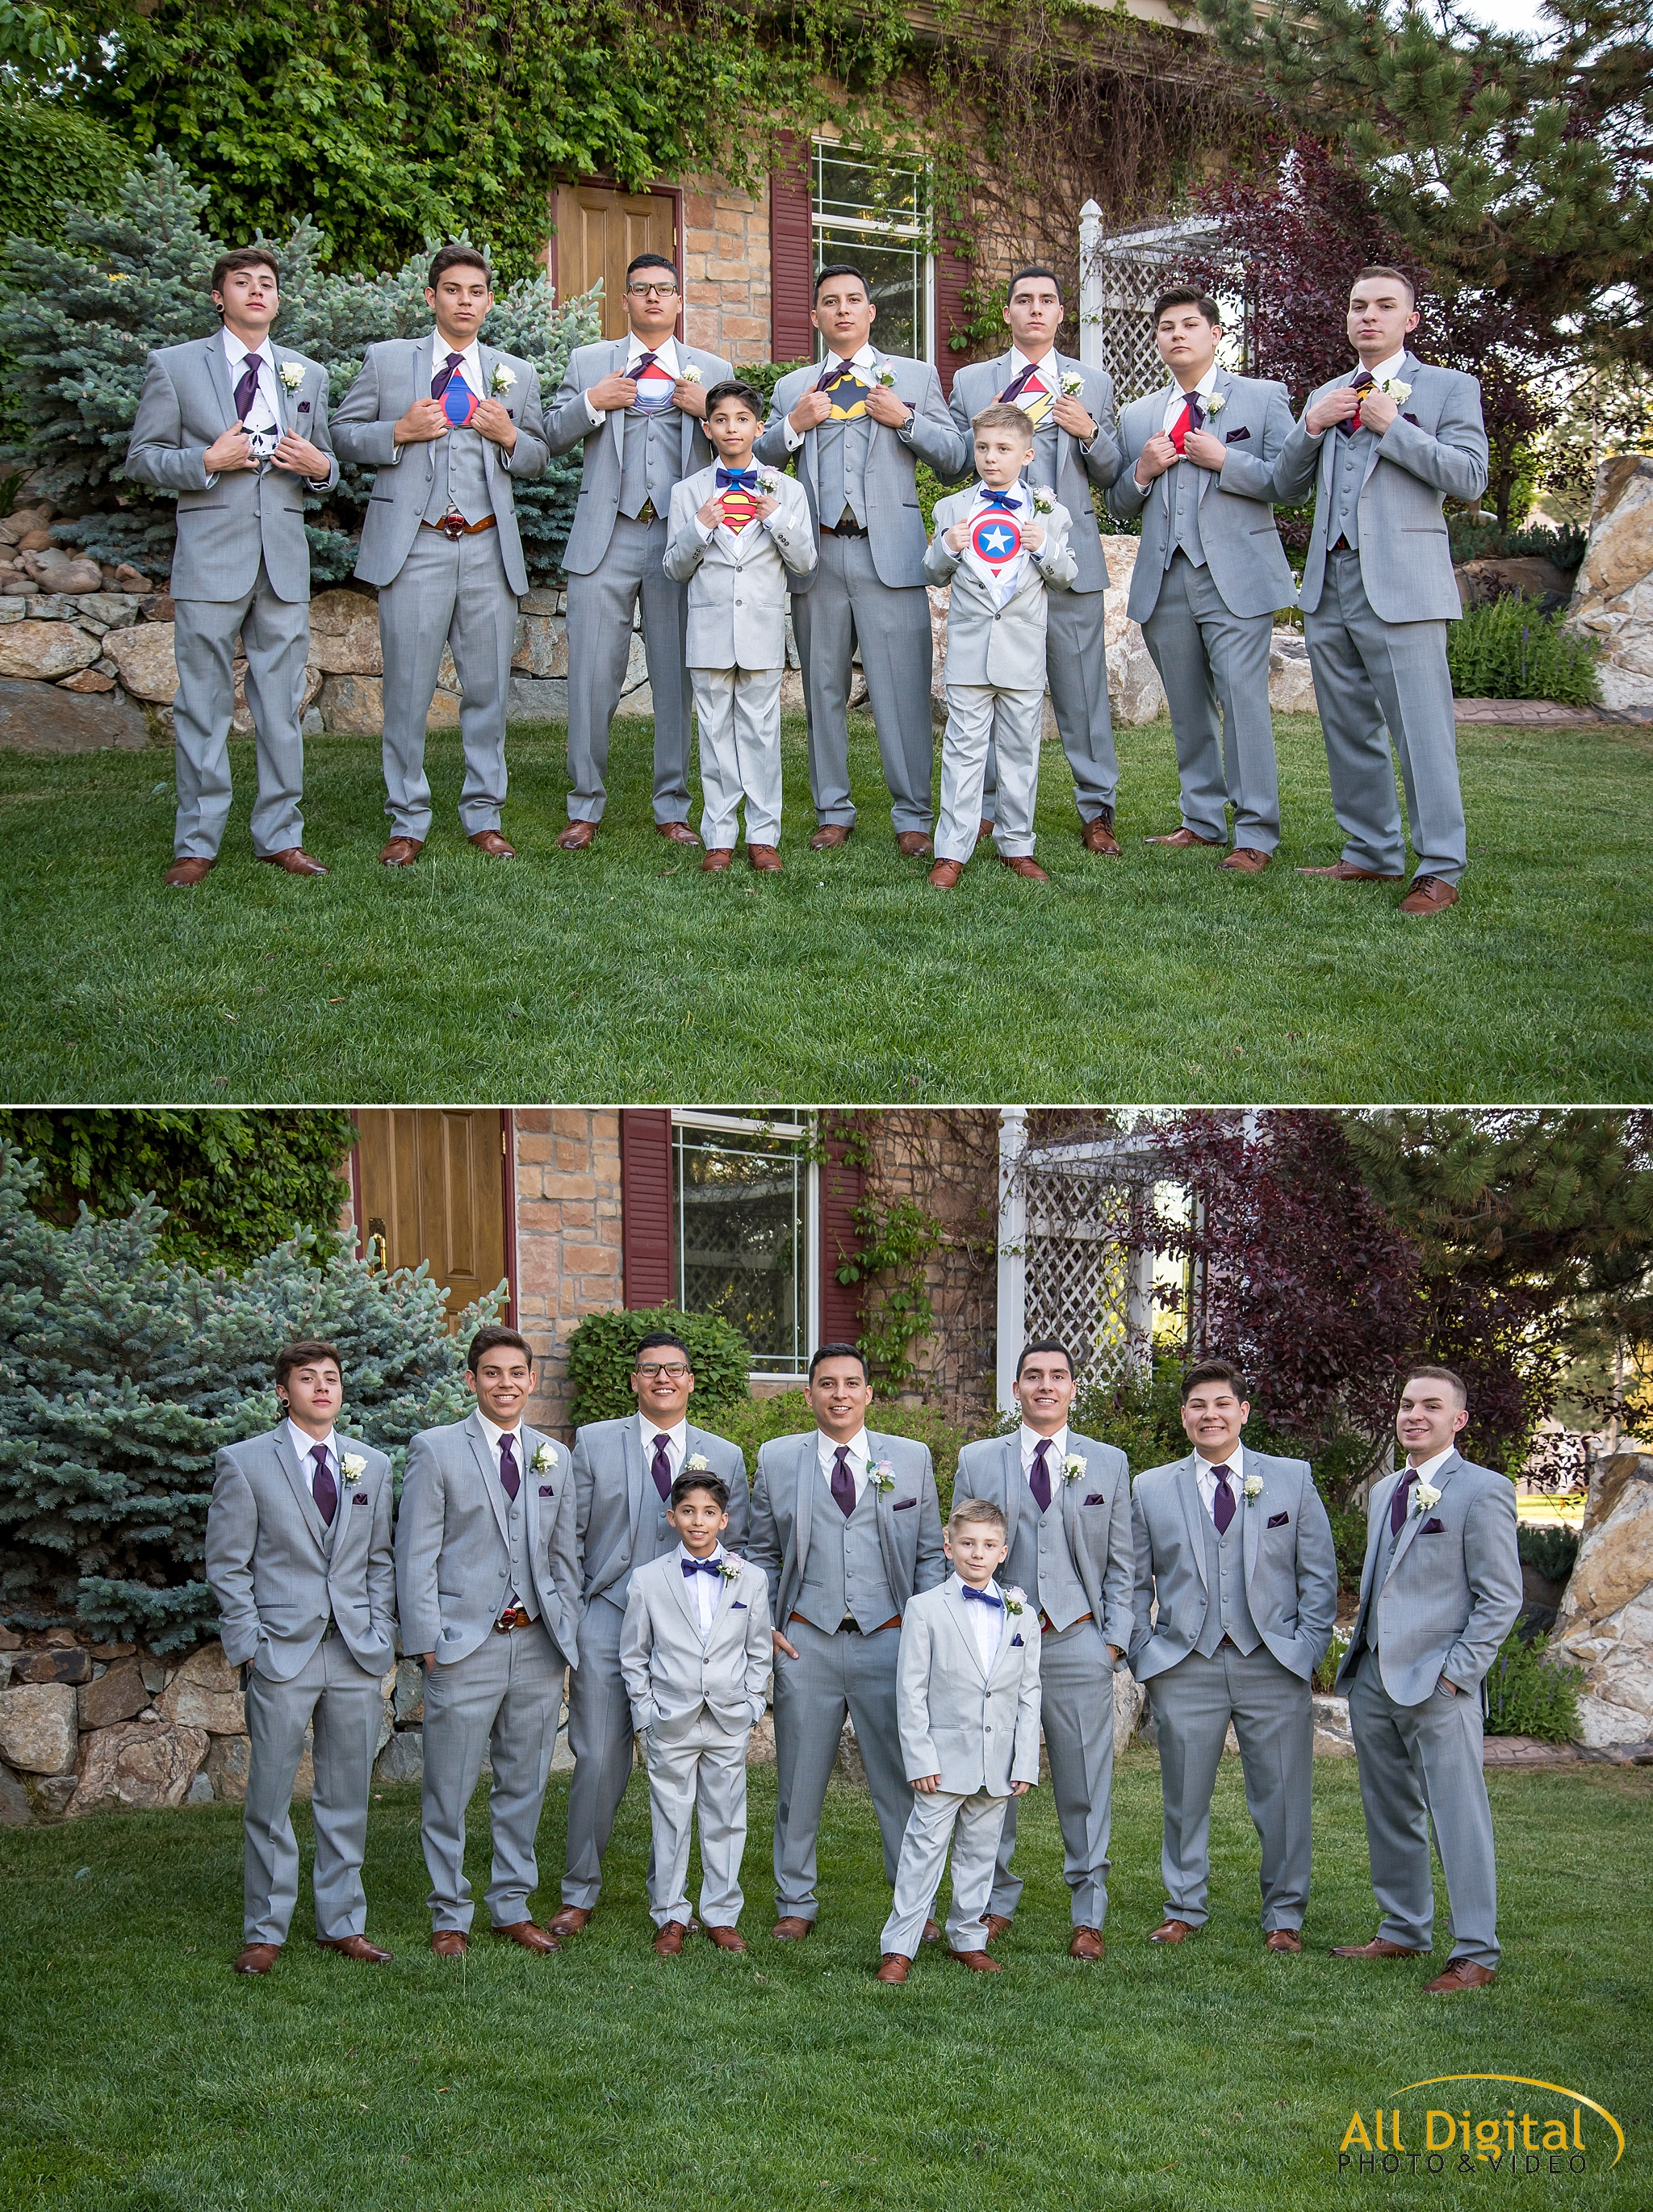 Groom, groomsmen, and ring bearer portraits at Stonebrook Manor.